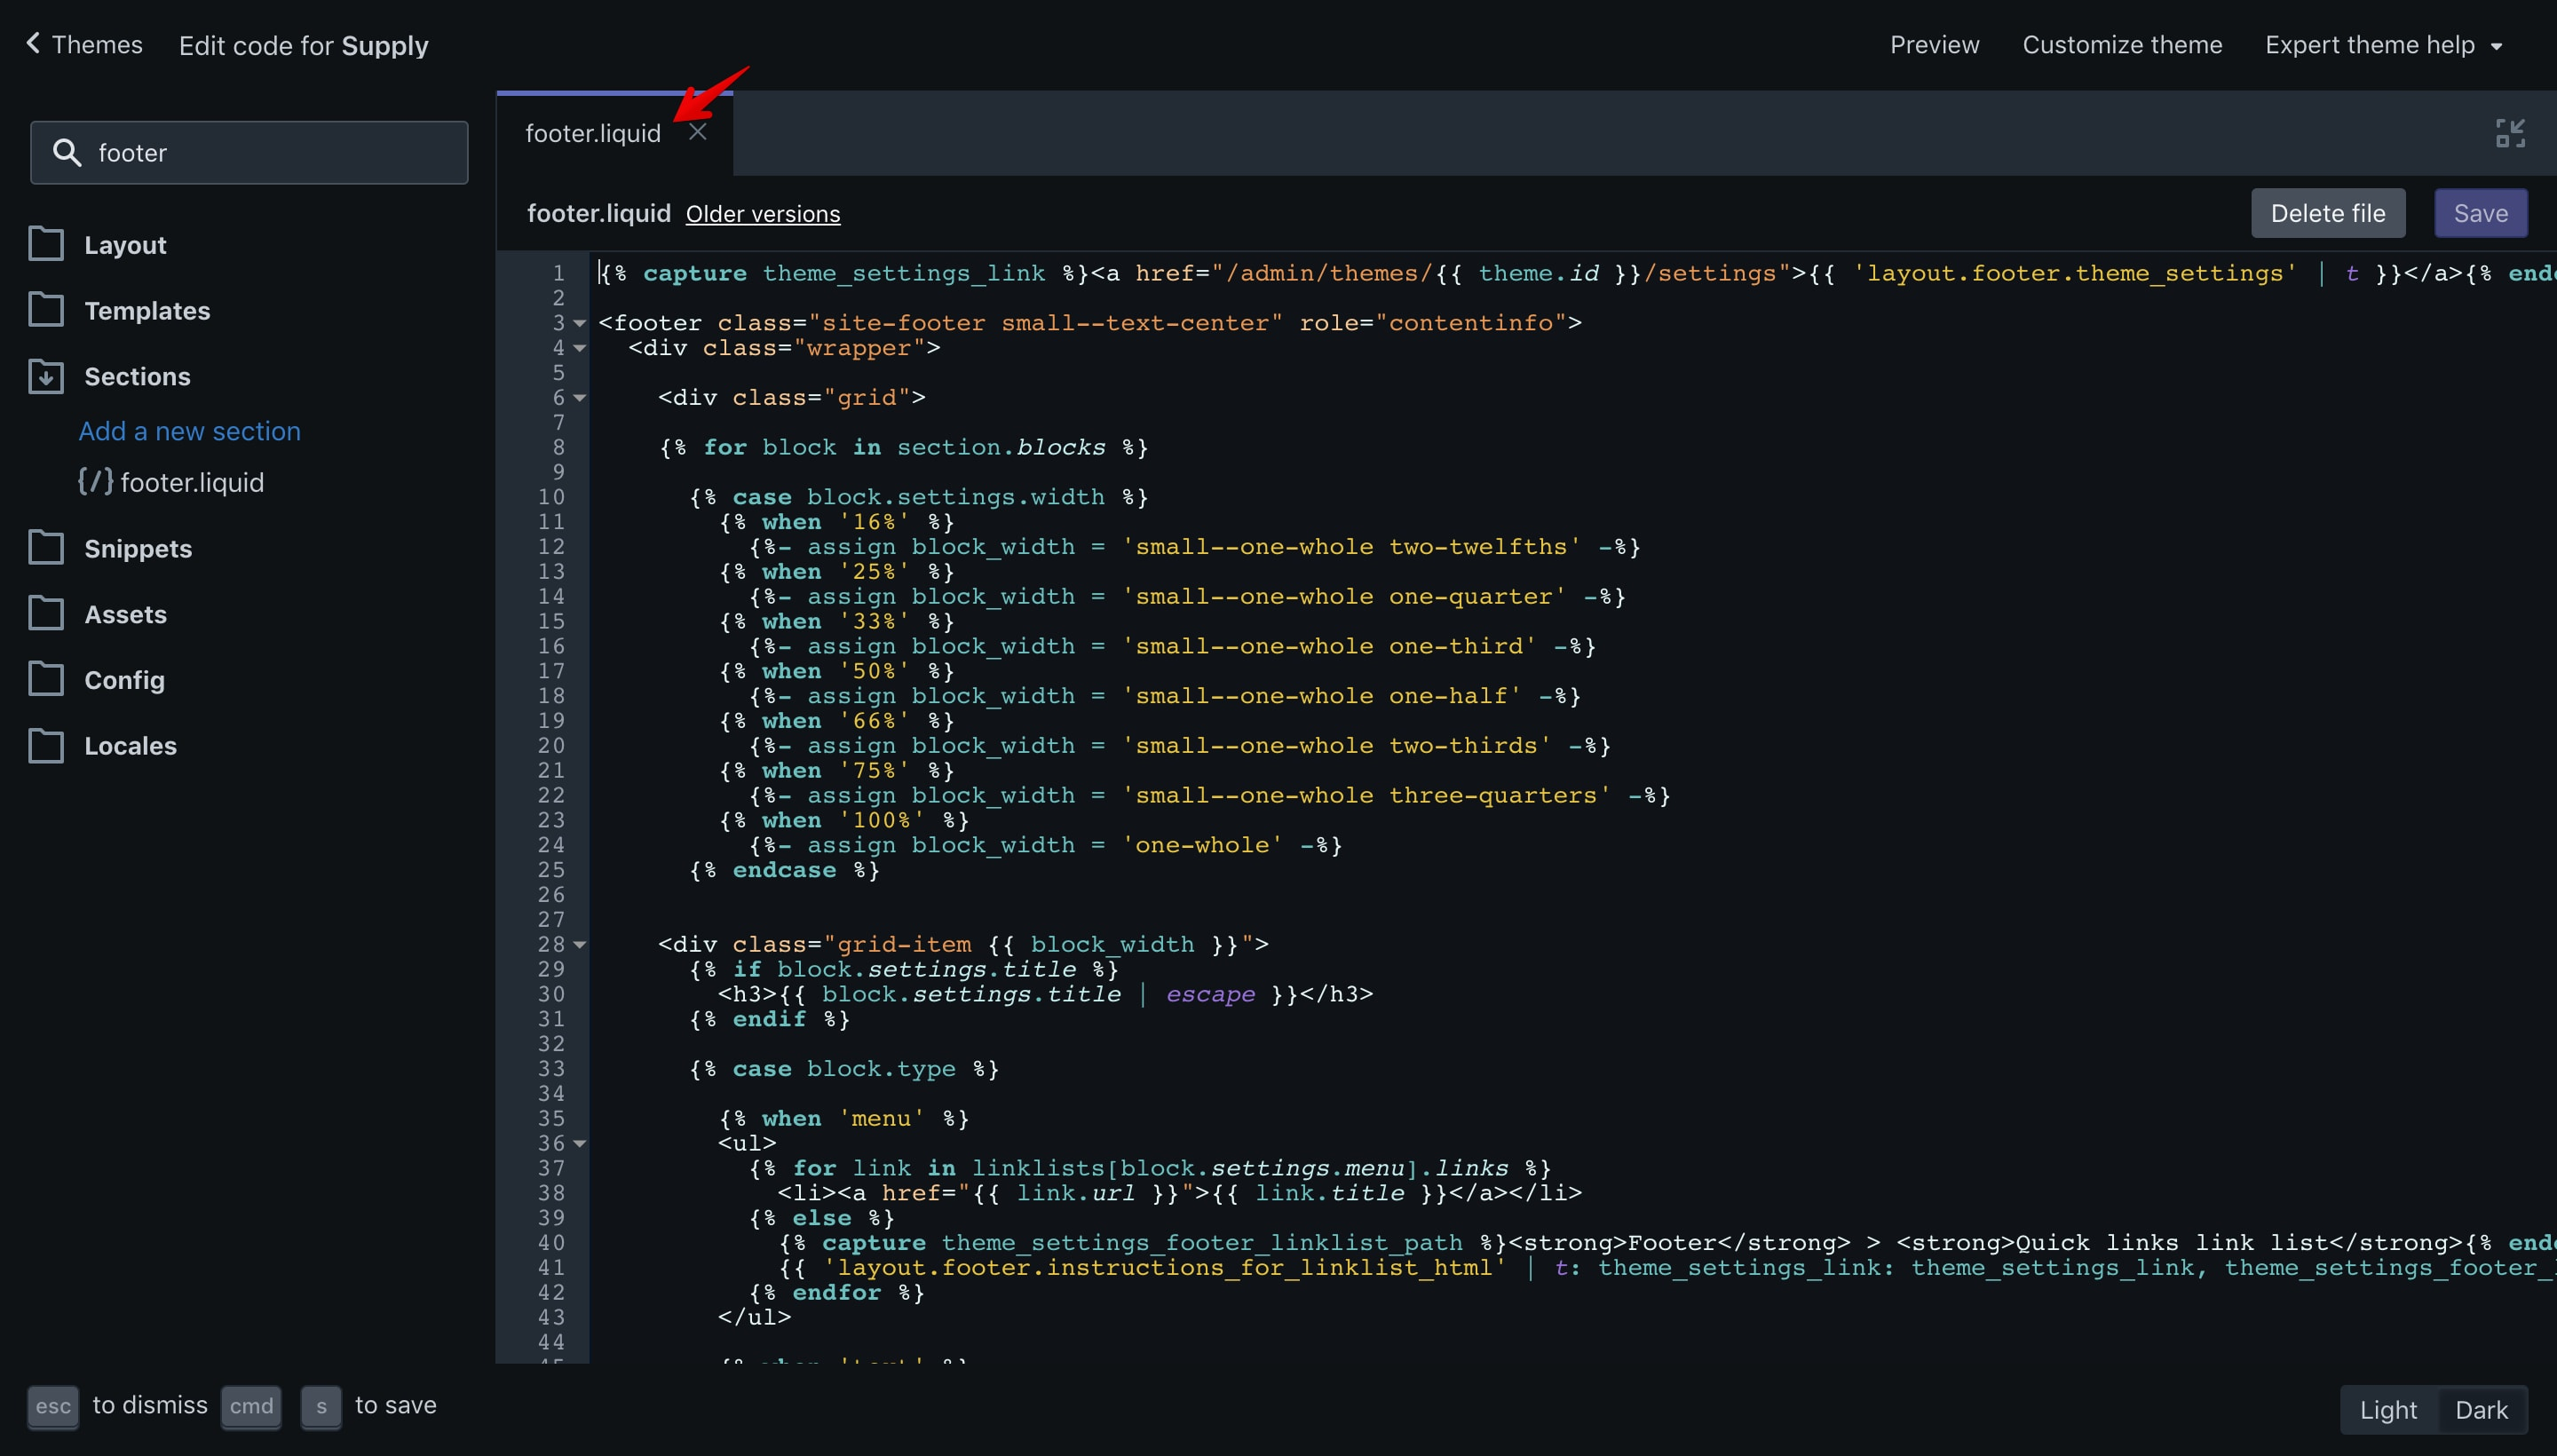 """Supply theme """"footer.liquid"""" file opened in the code editor."""